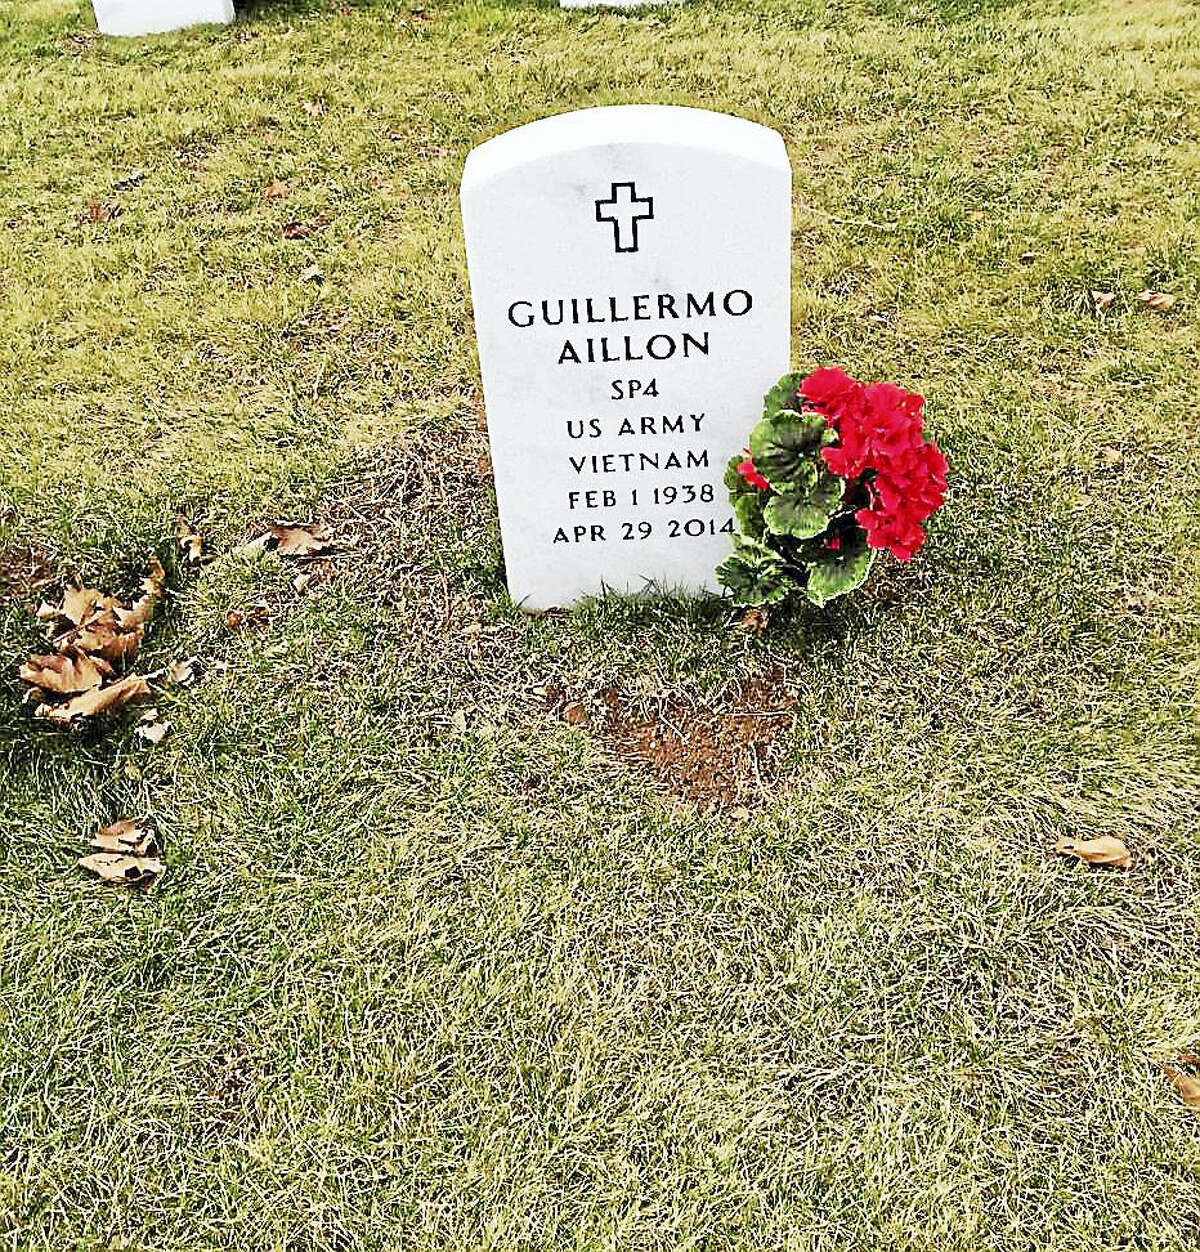 The gravestone of Guillermo Aillon at the State Veterans Cemetery.